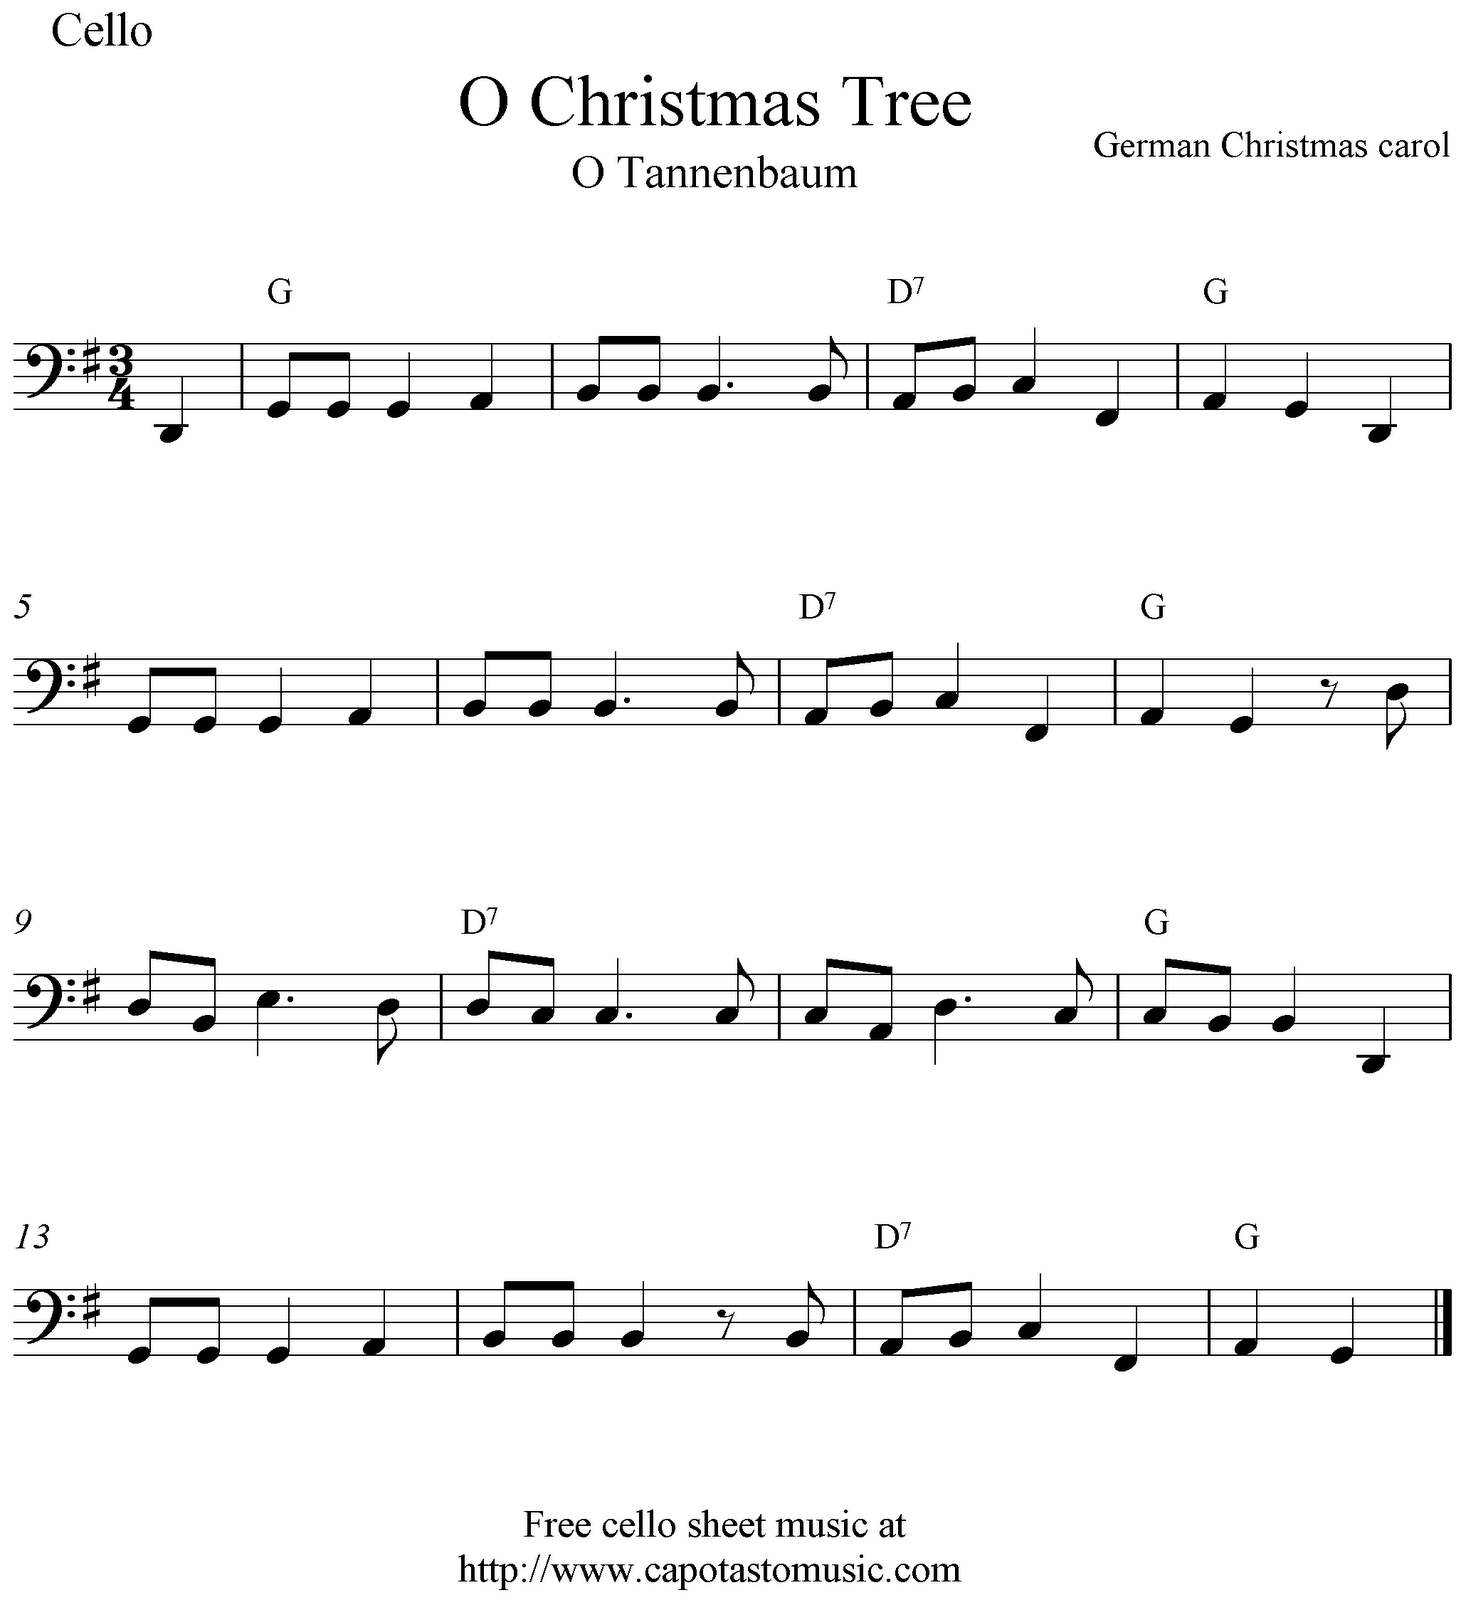 Free Christmas Guitar Sheet Music For Beginners: O Christmas Tree, Free Christmas Cello Sheet Music Notes